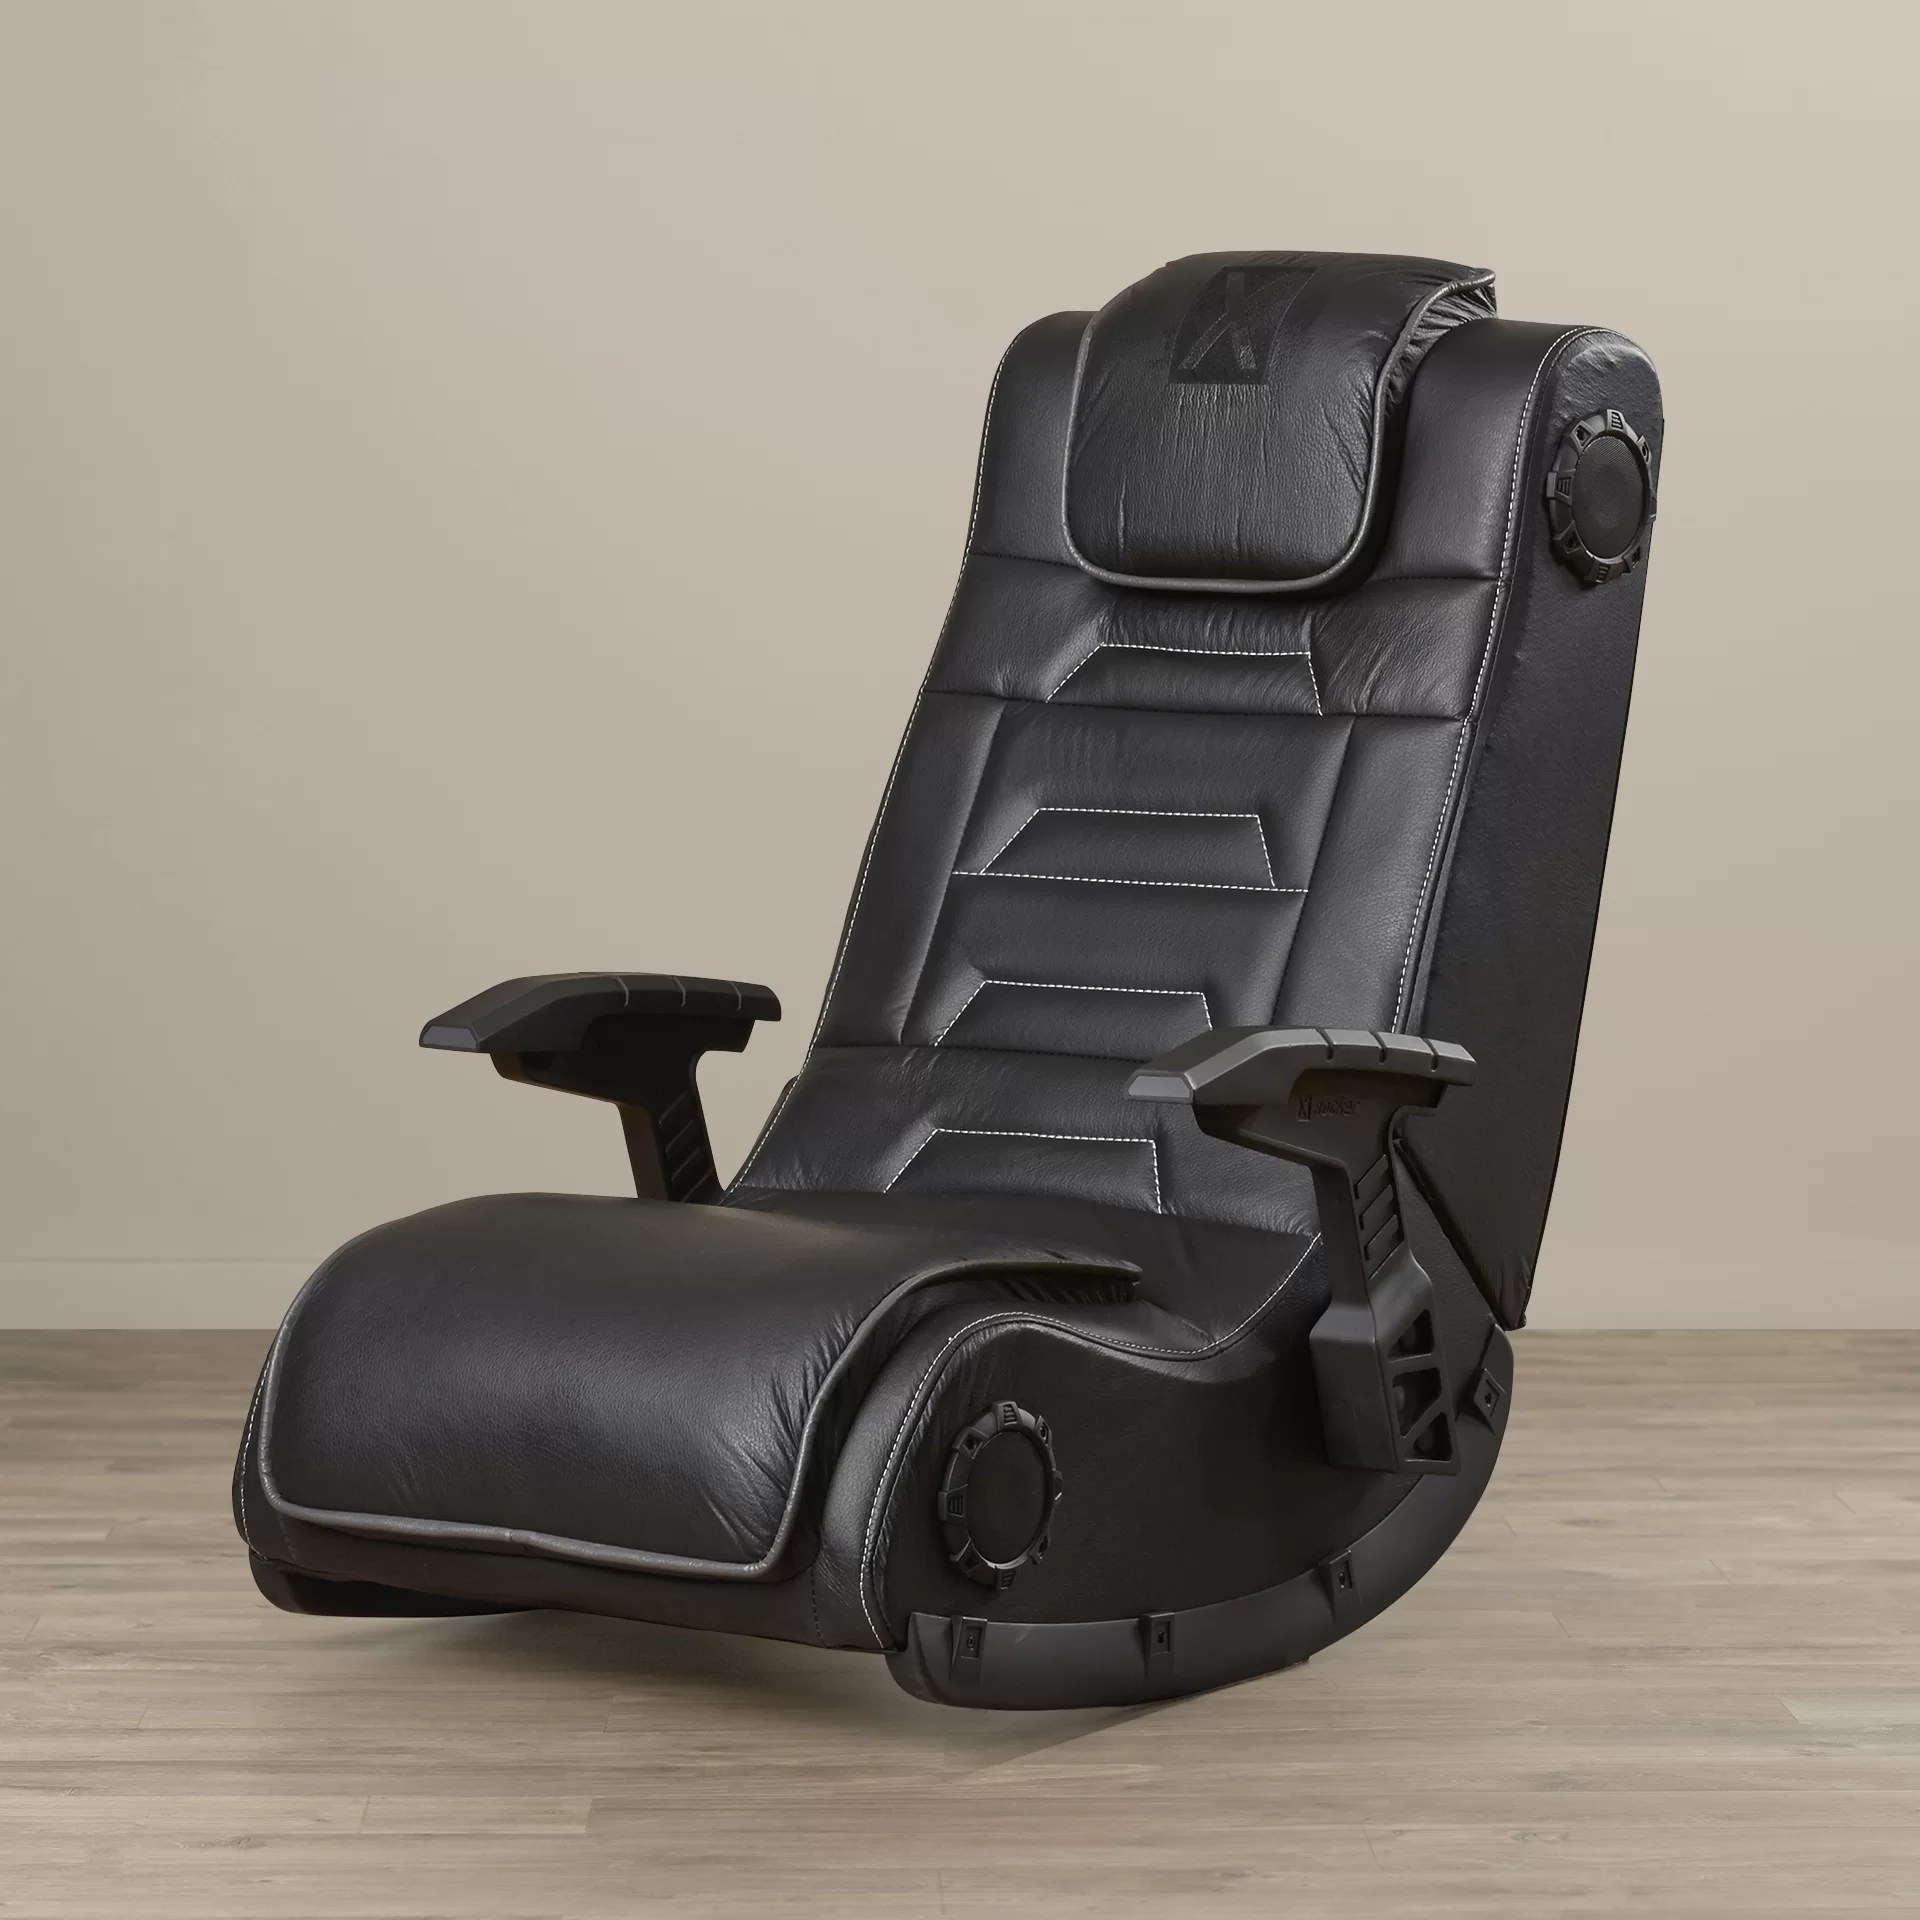 Game Chair With Speakers Adults Recliner Gaming Chair With Speakers